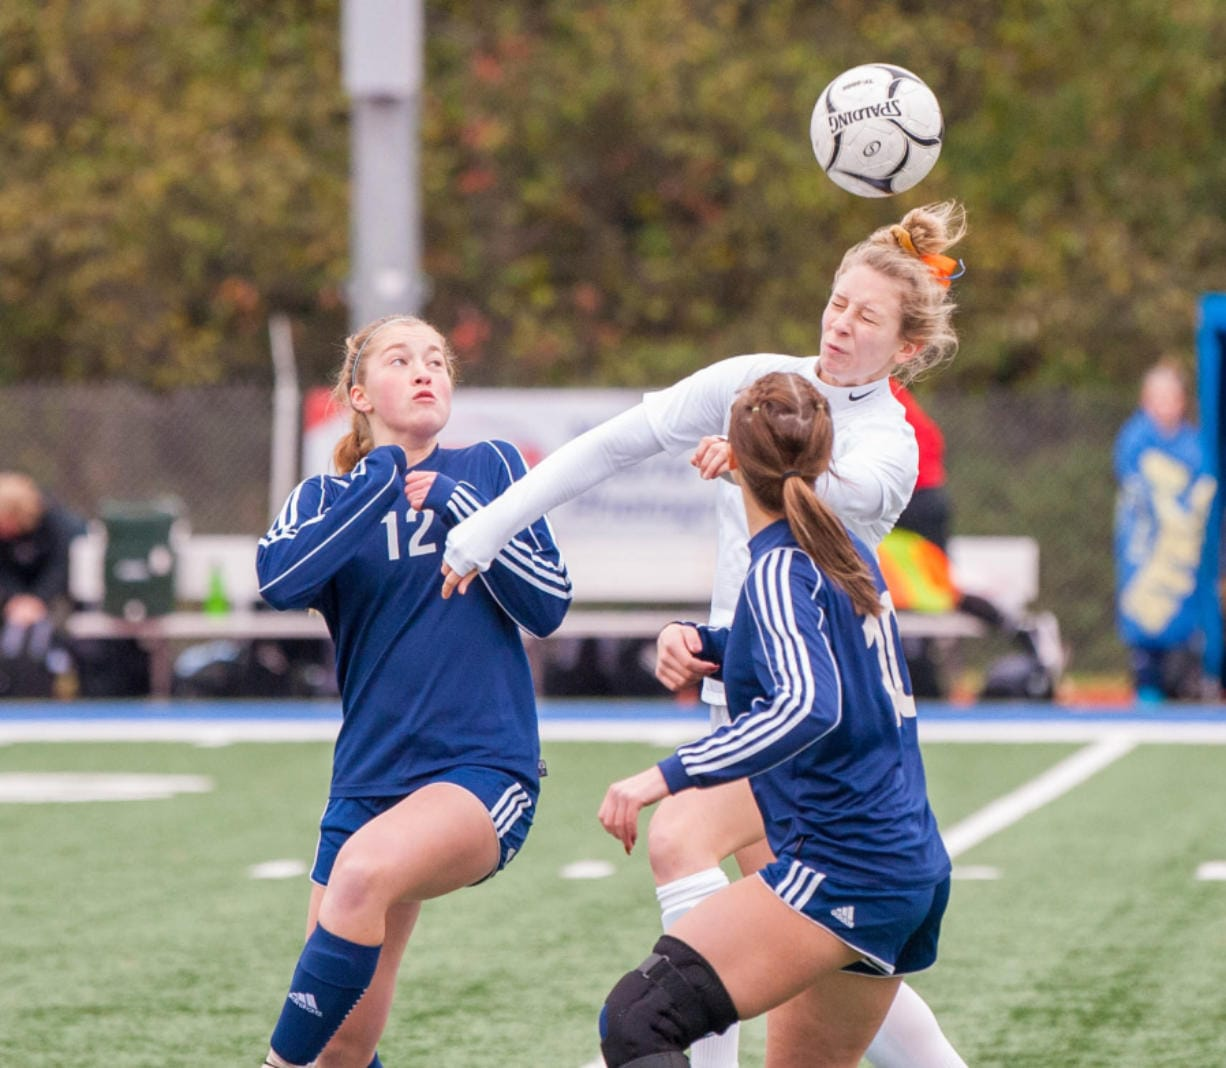 Ridgefield's Brooke Weese heads the ball over Selah defenders in the 2A third-place match last fall. The one-time Concordia commit will now play collegiate soccer at Humboldt State due to Concordia's closure in February.